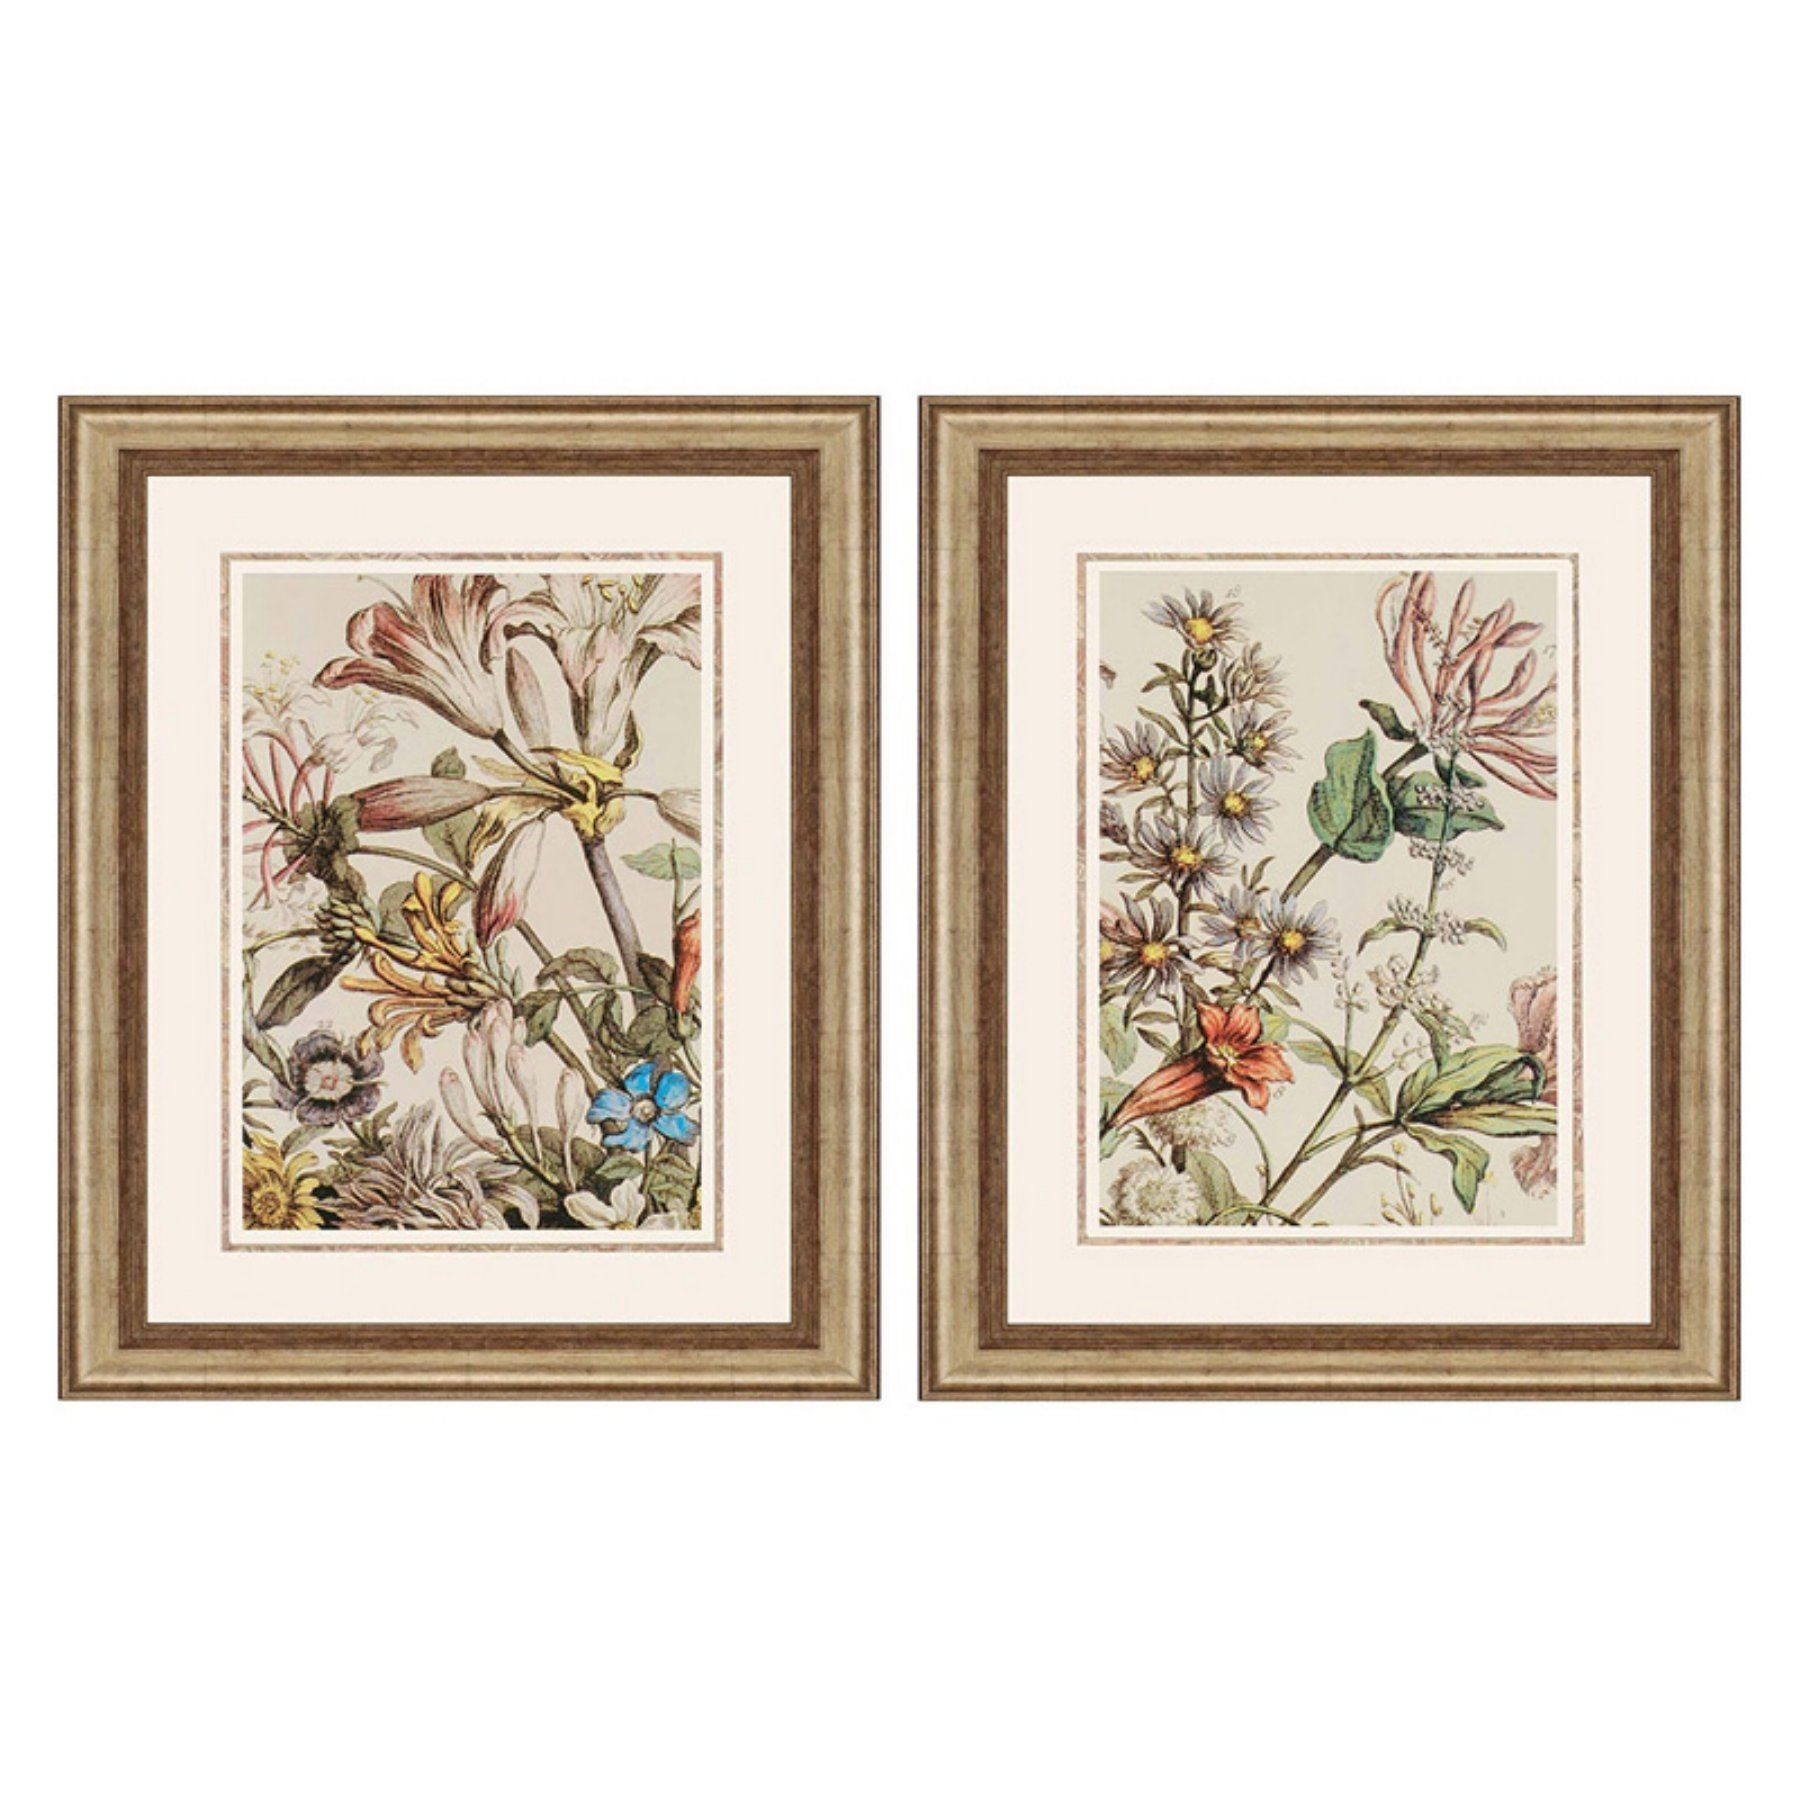 Paragon Decor October Detail Framed Wall Art – Set Of 2 – 7654 For Most Recent Set Of 2 Framed Wall Art (View 11 of 20)